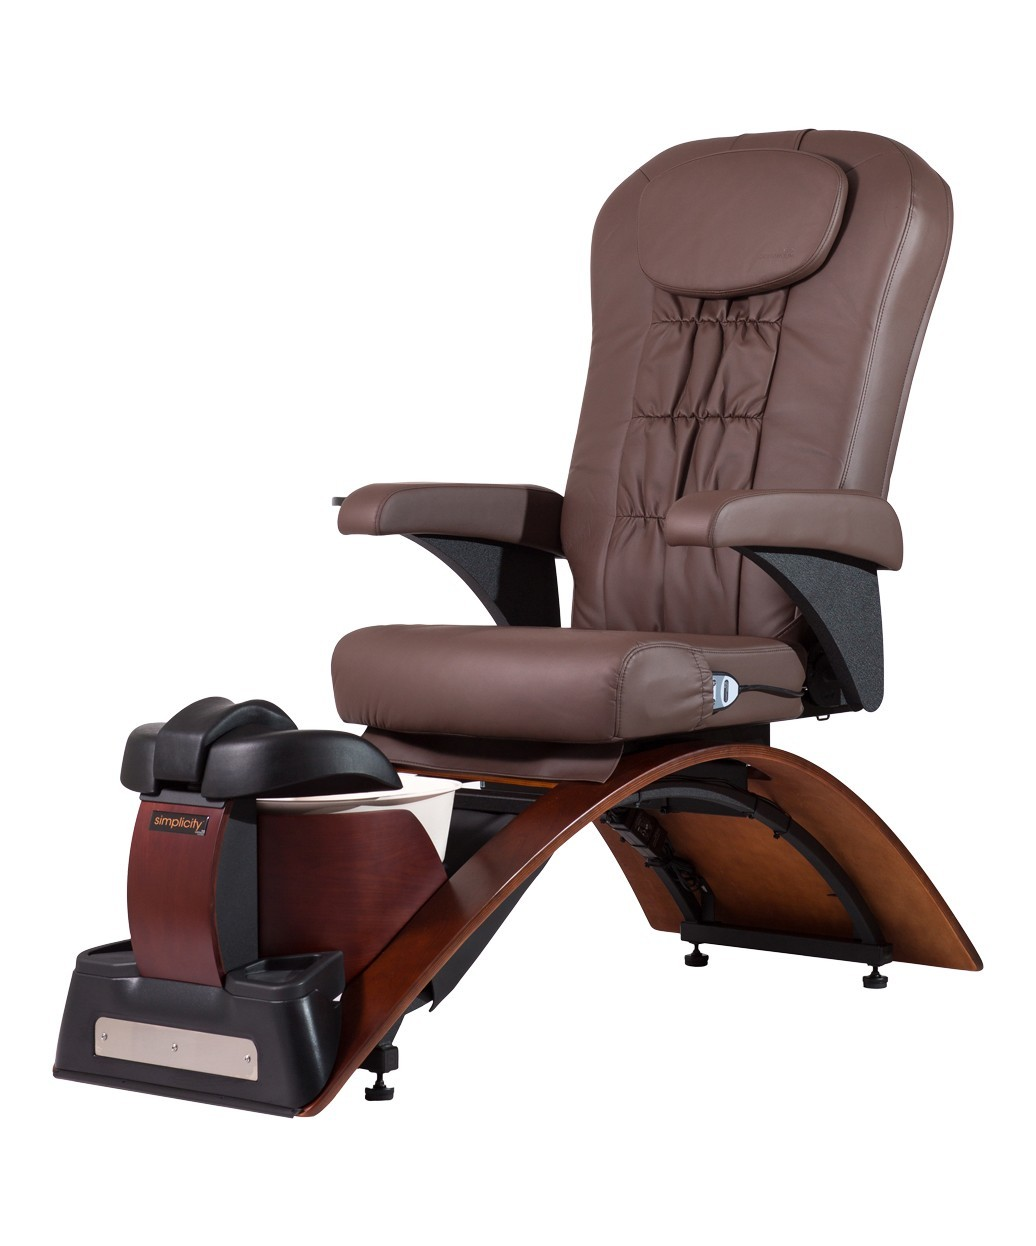 Simplicity Pedicure Chair From Continuum Footspas